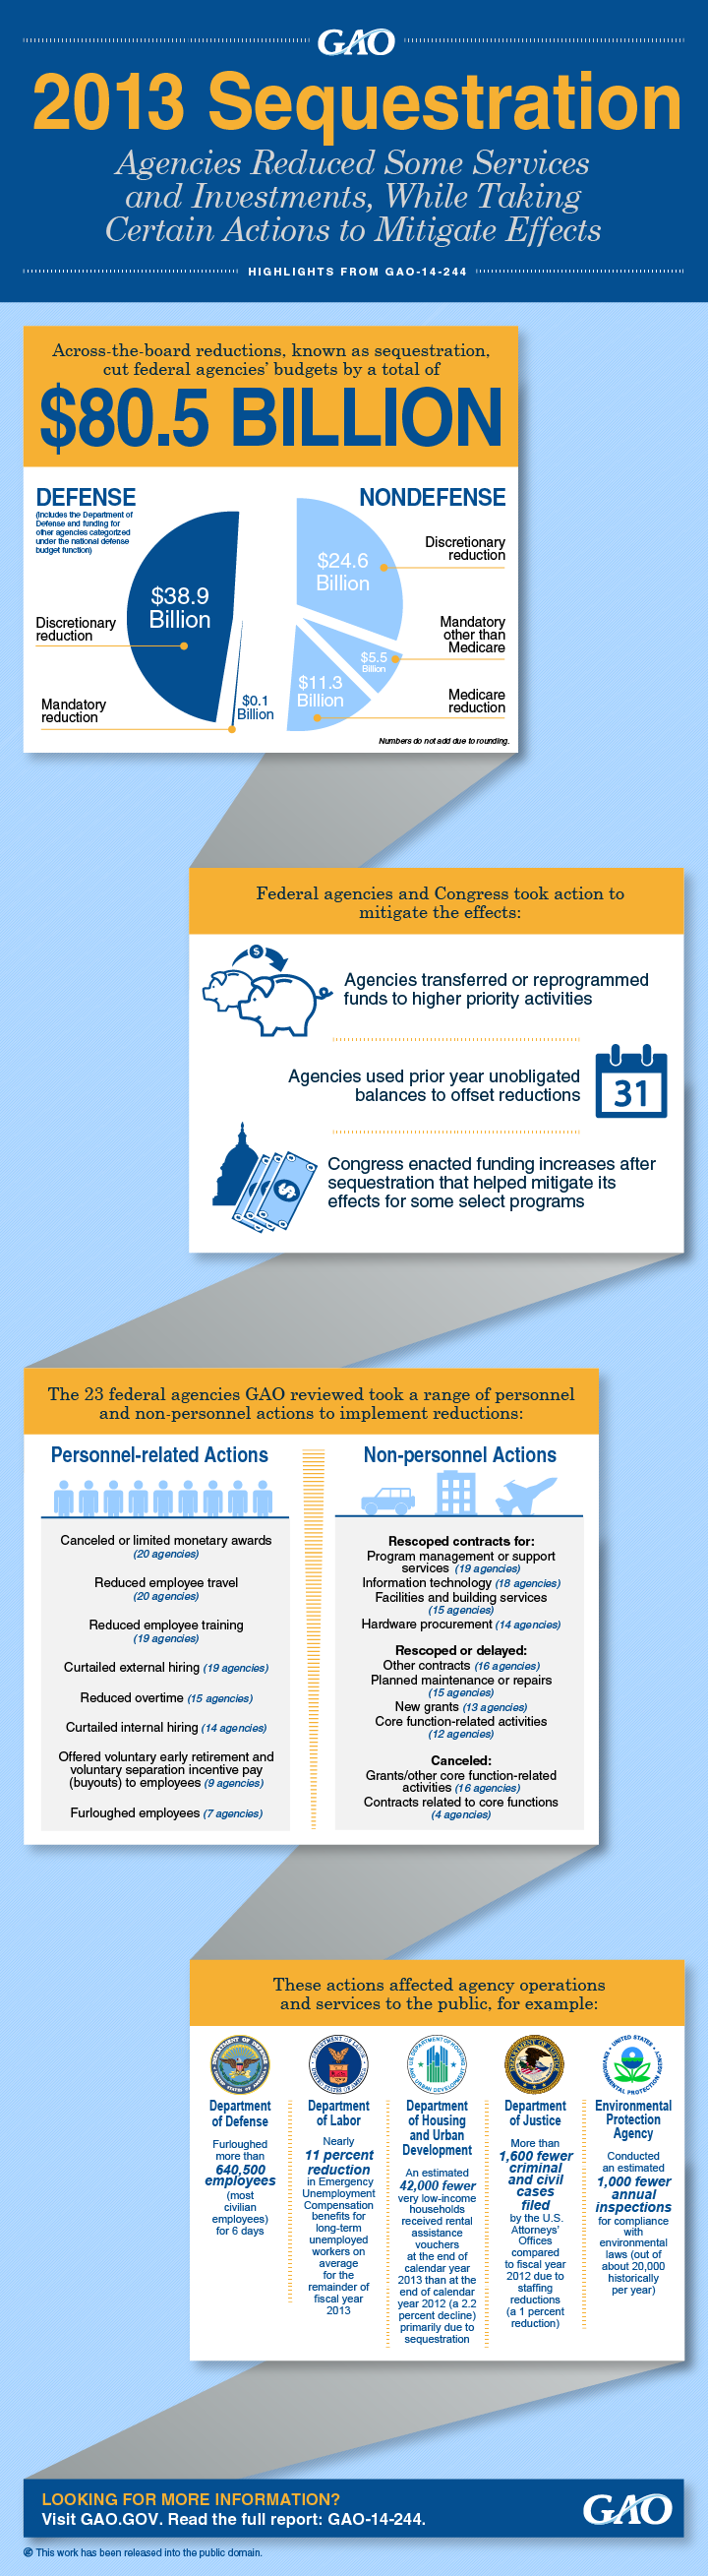 Sequestration Infographic 2013